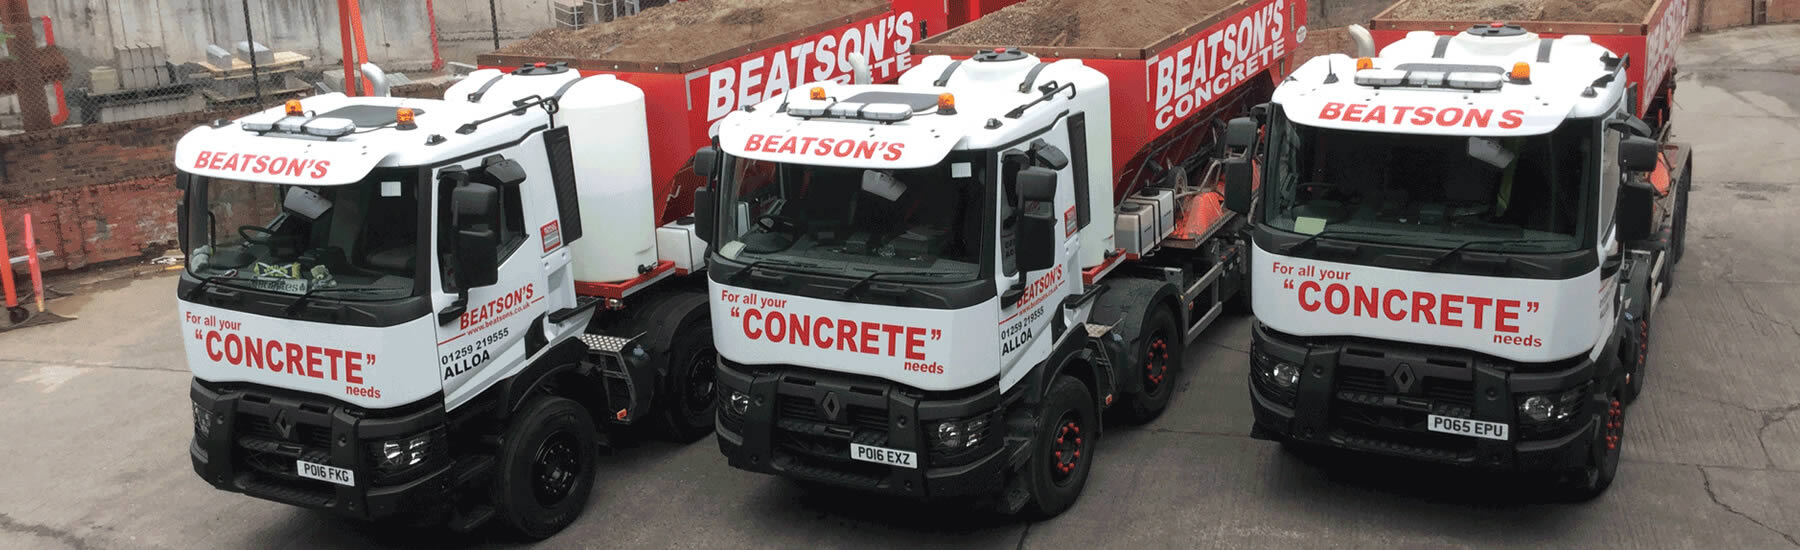 Concrete delivery trucks Scotland